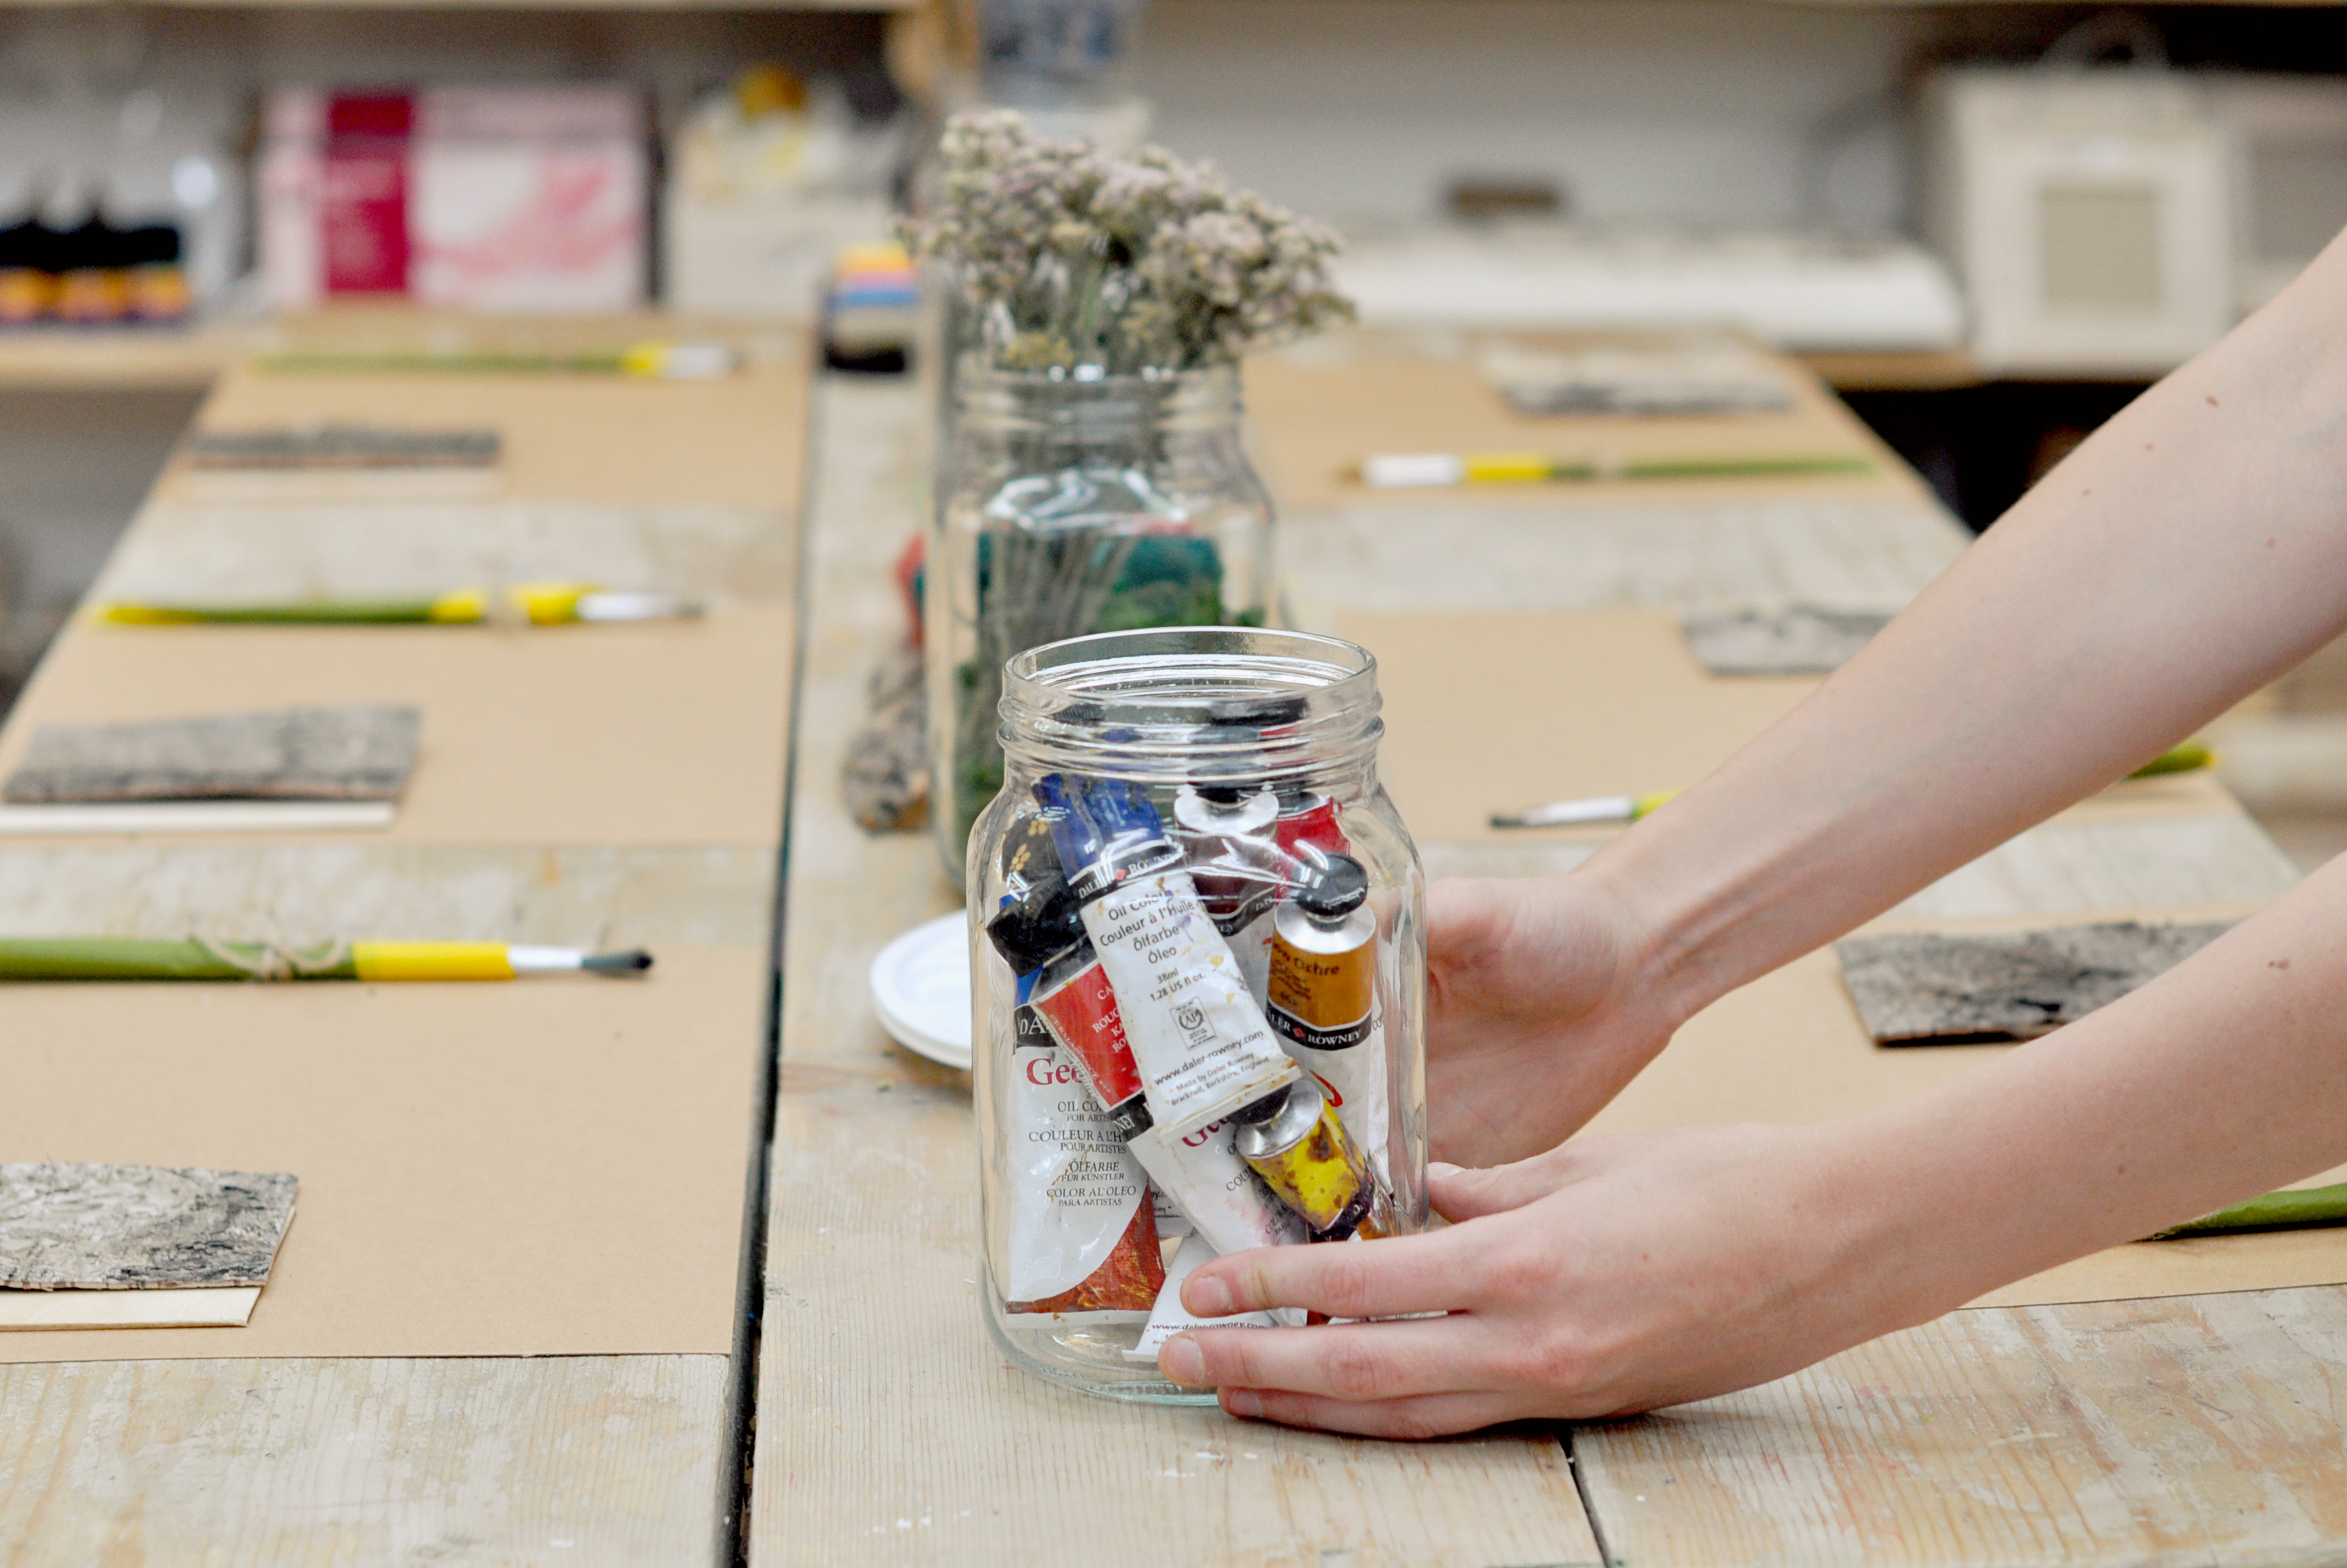 Adult workshops this autumn slanchogled for Creative arts and crafts ideas for adults